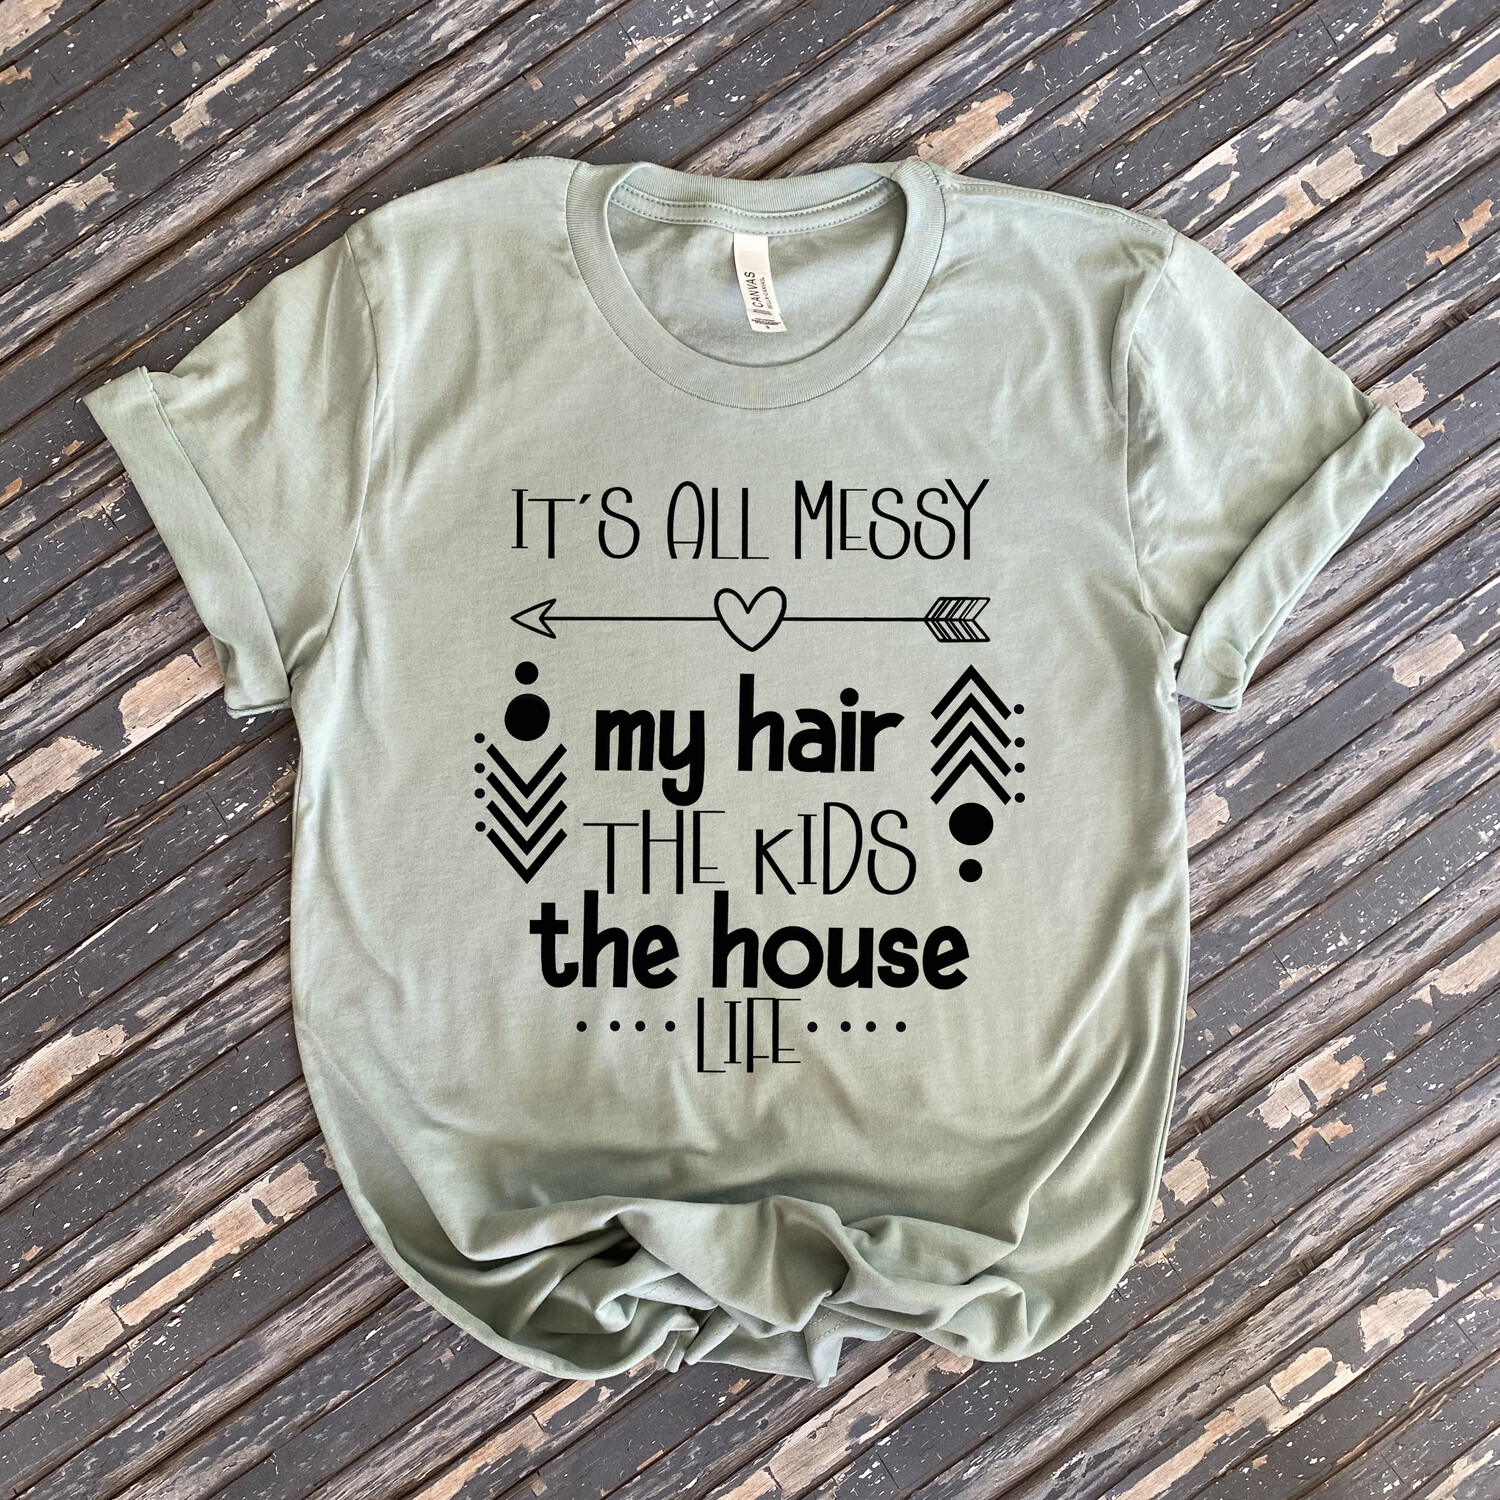 It's All Messy Womens Graphic T Shirt